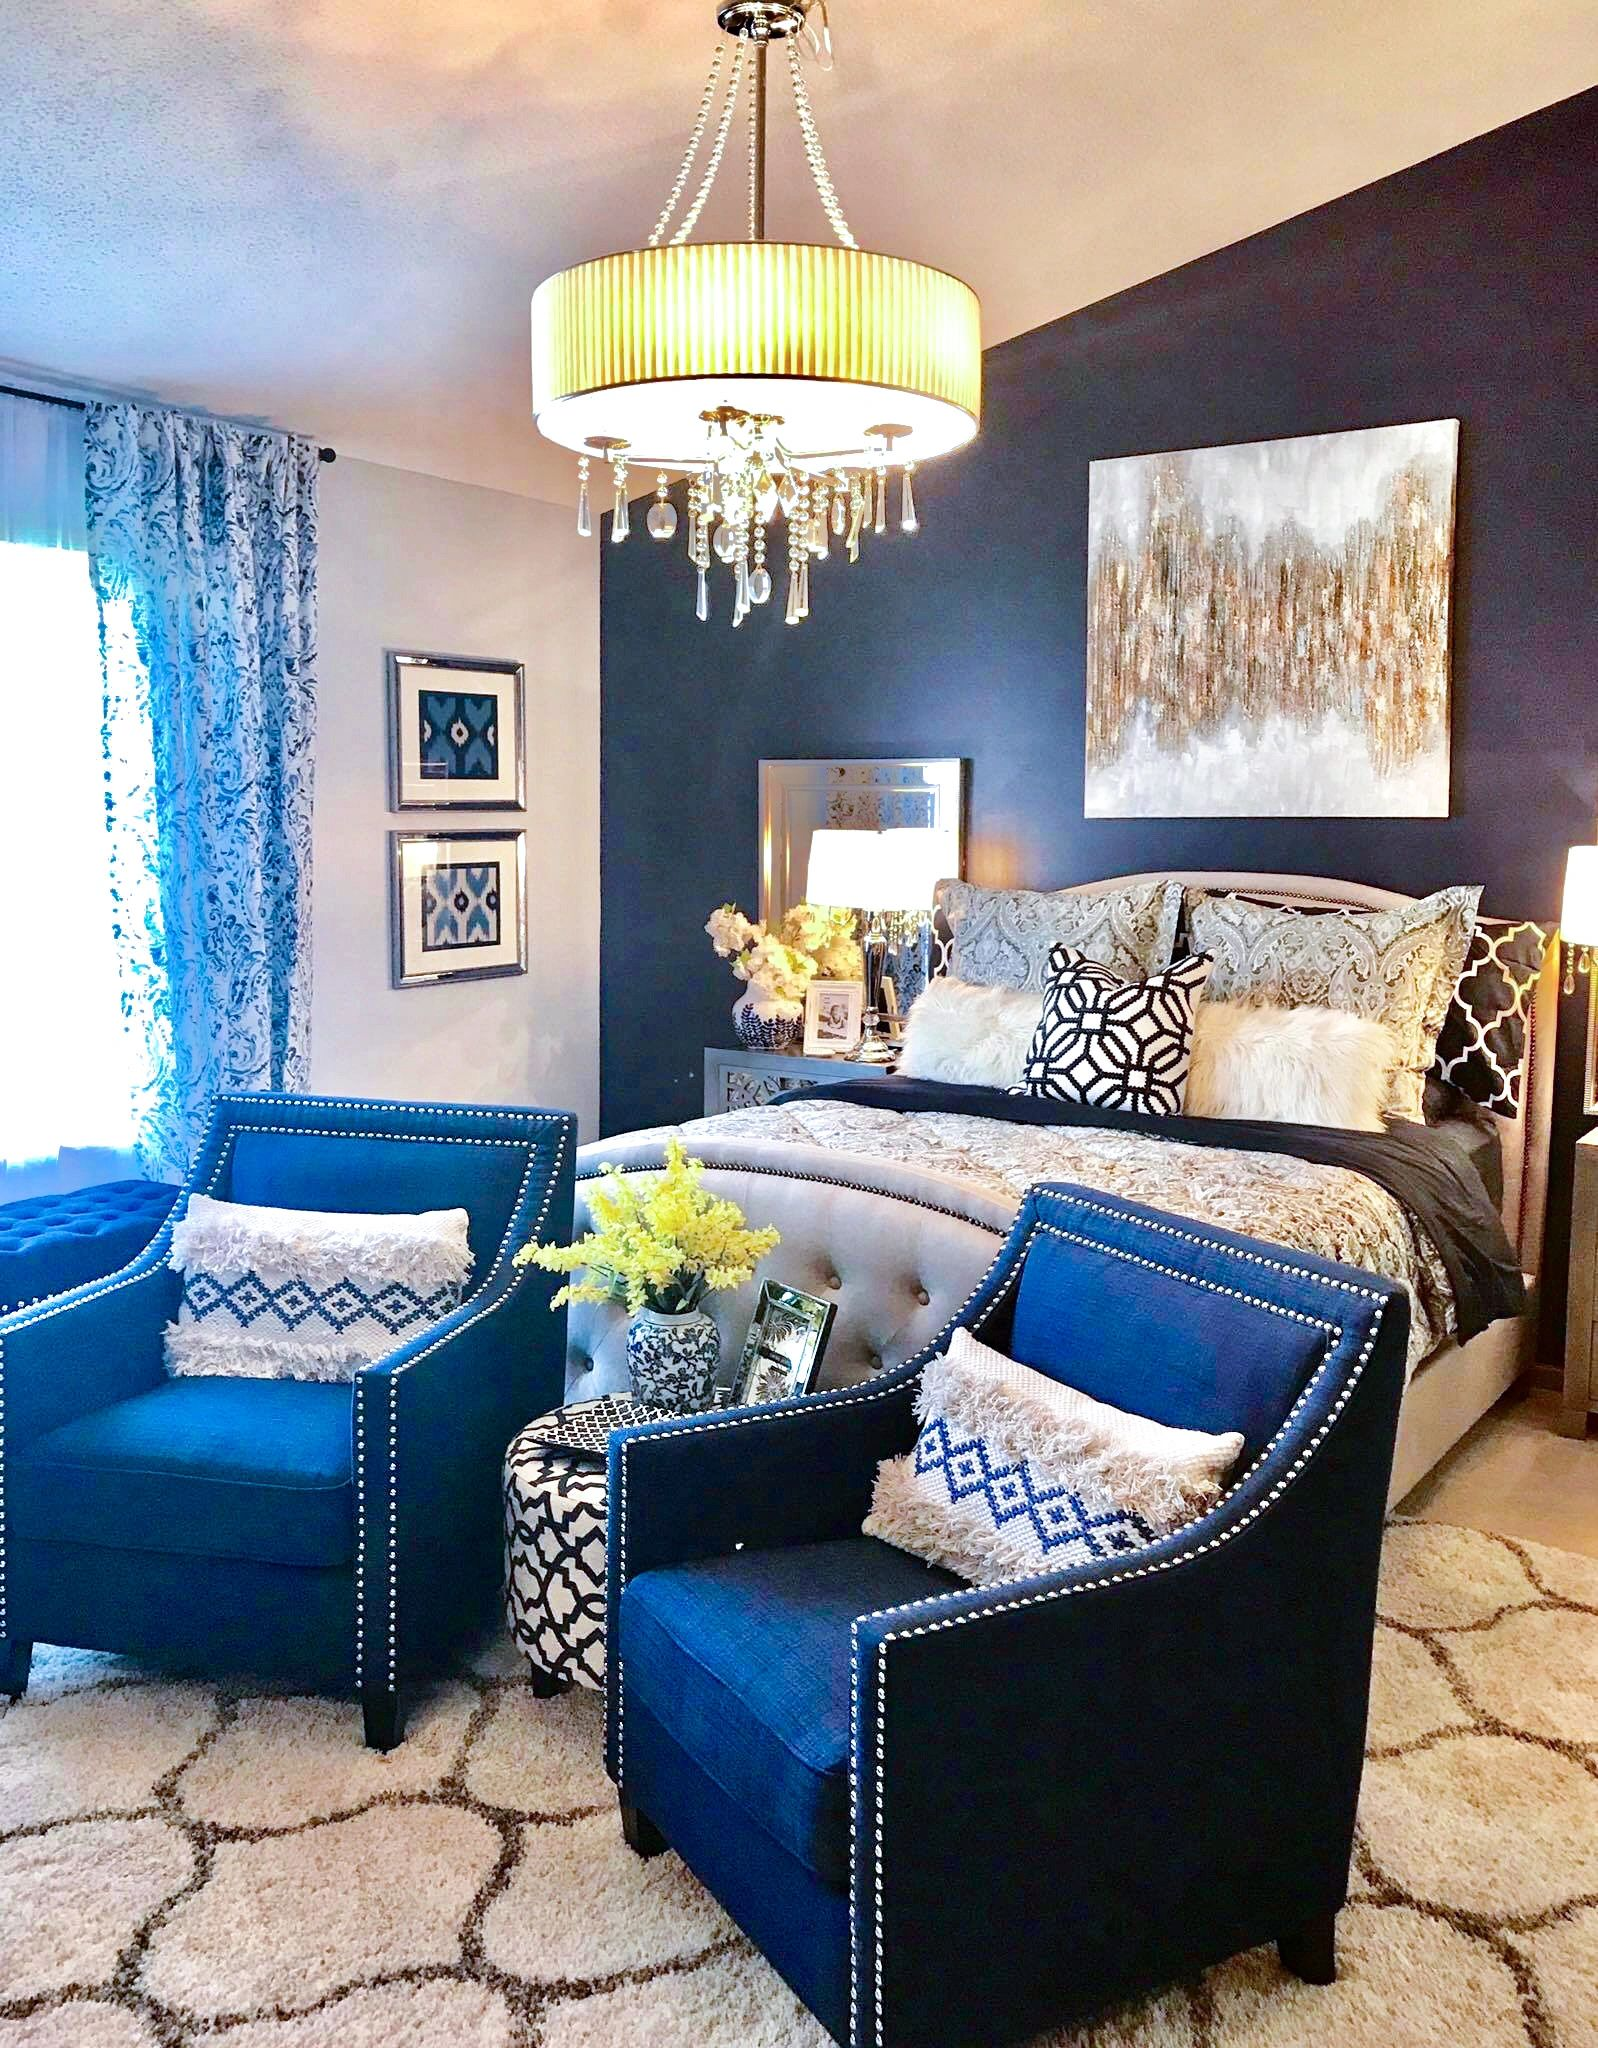 Yellow Door Interior:  Blue and Gray Glam Master Bedroom